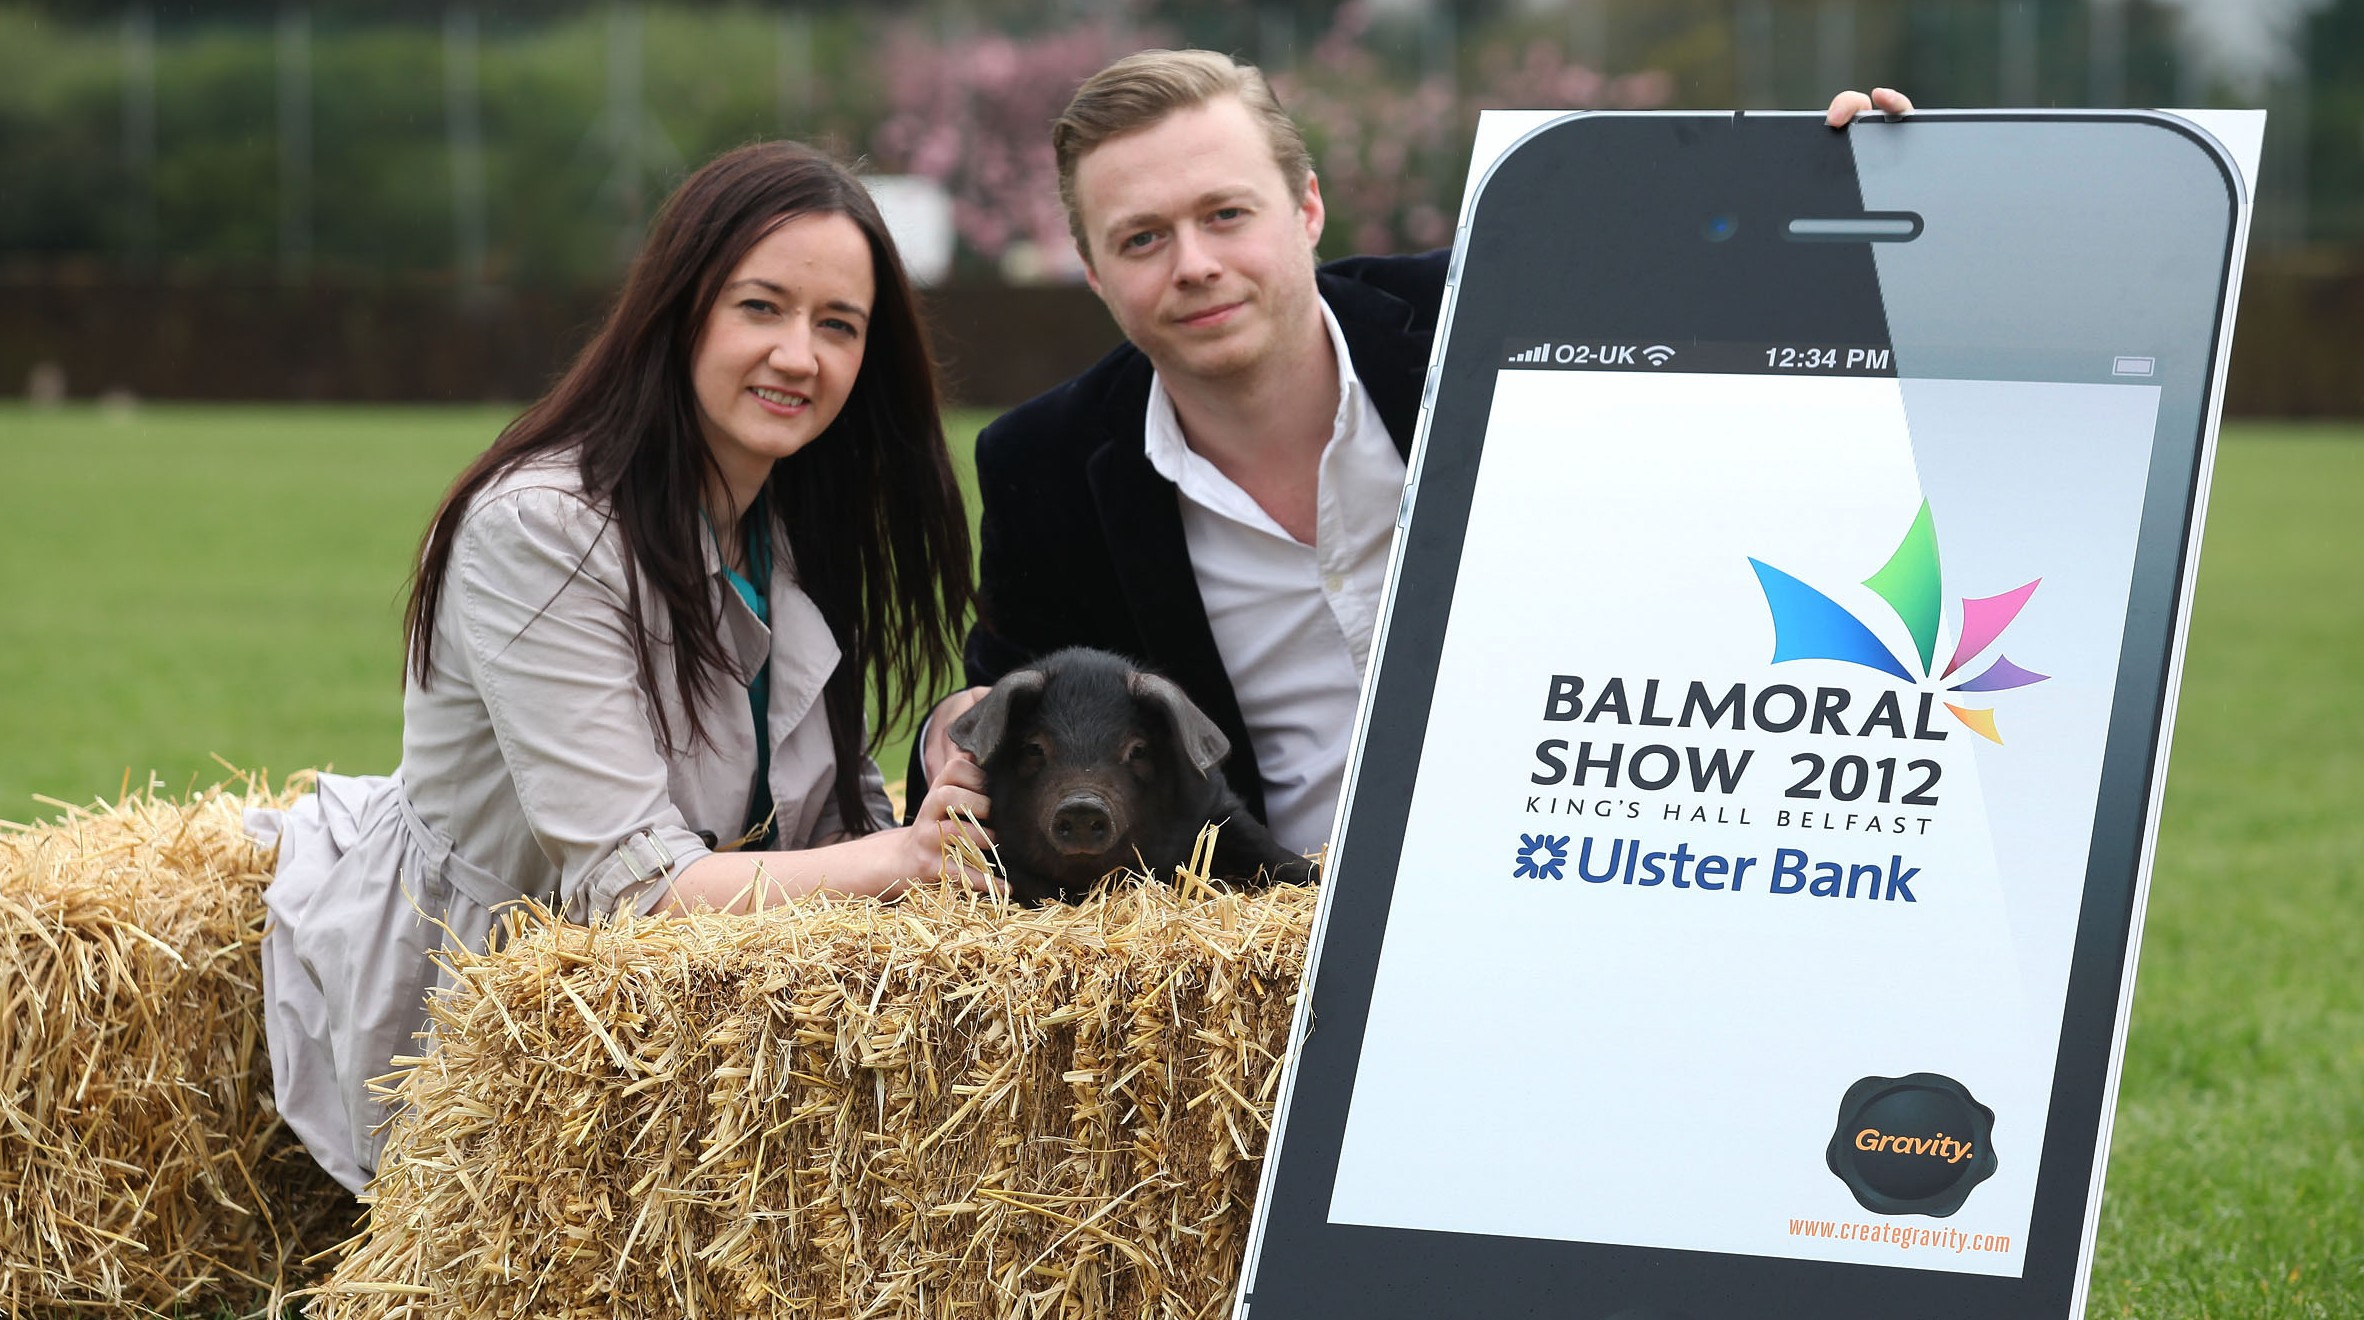 'Appy' Days as Gravity ploughs new furrow at Balmoral Show